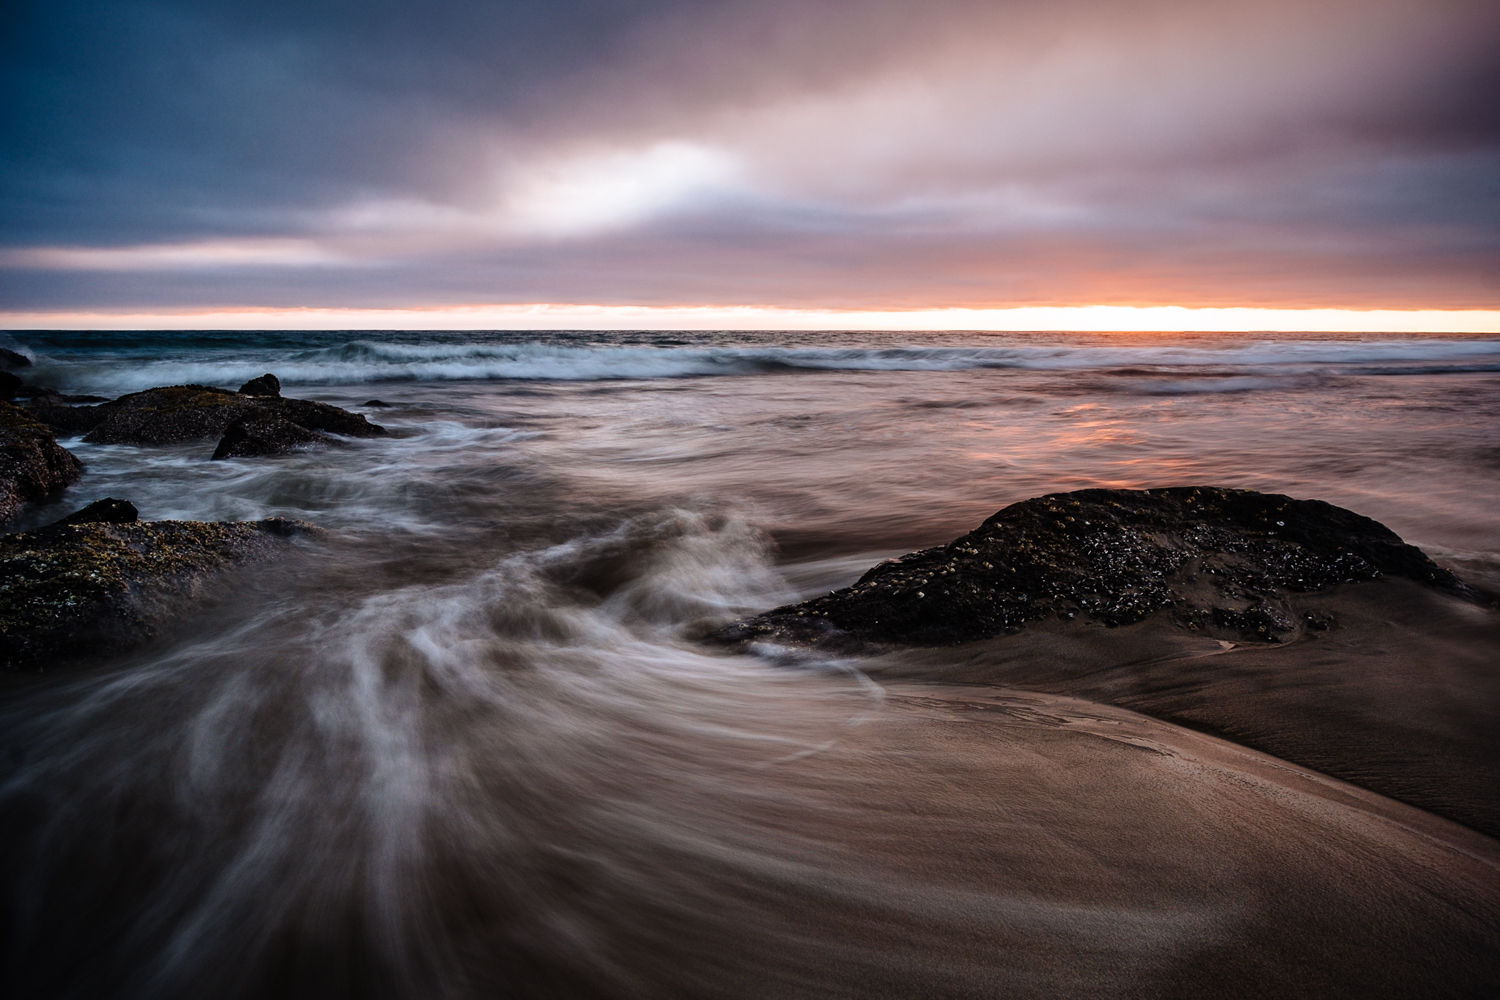 Newport Beach Sunset. Shot from a low perspective on a tripod using the LCD display.